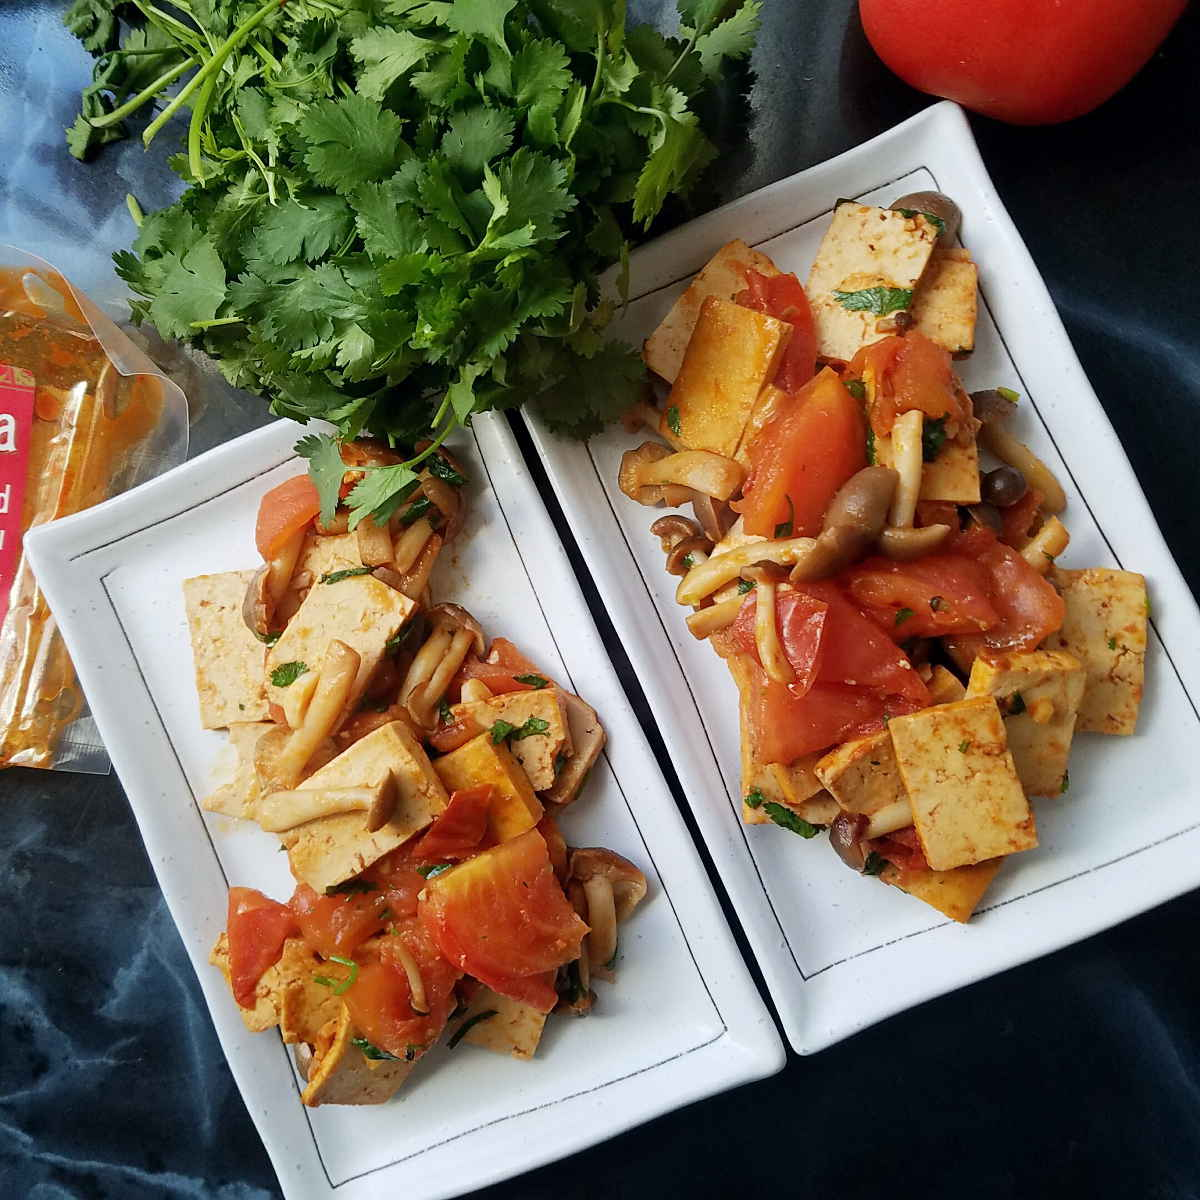 gluten-free vegan stir-fry with sriracha tofu and mushrooms